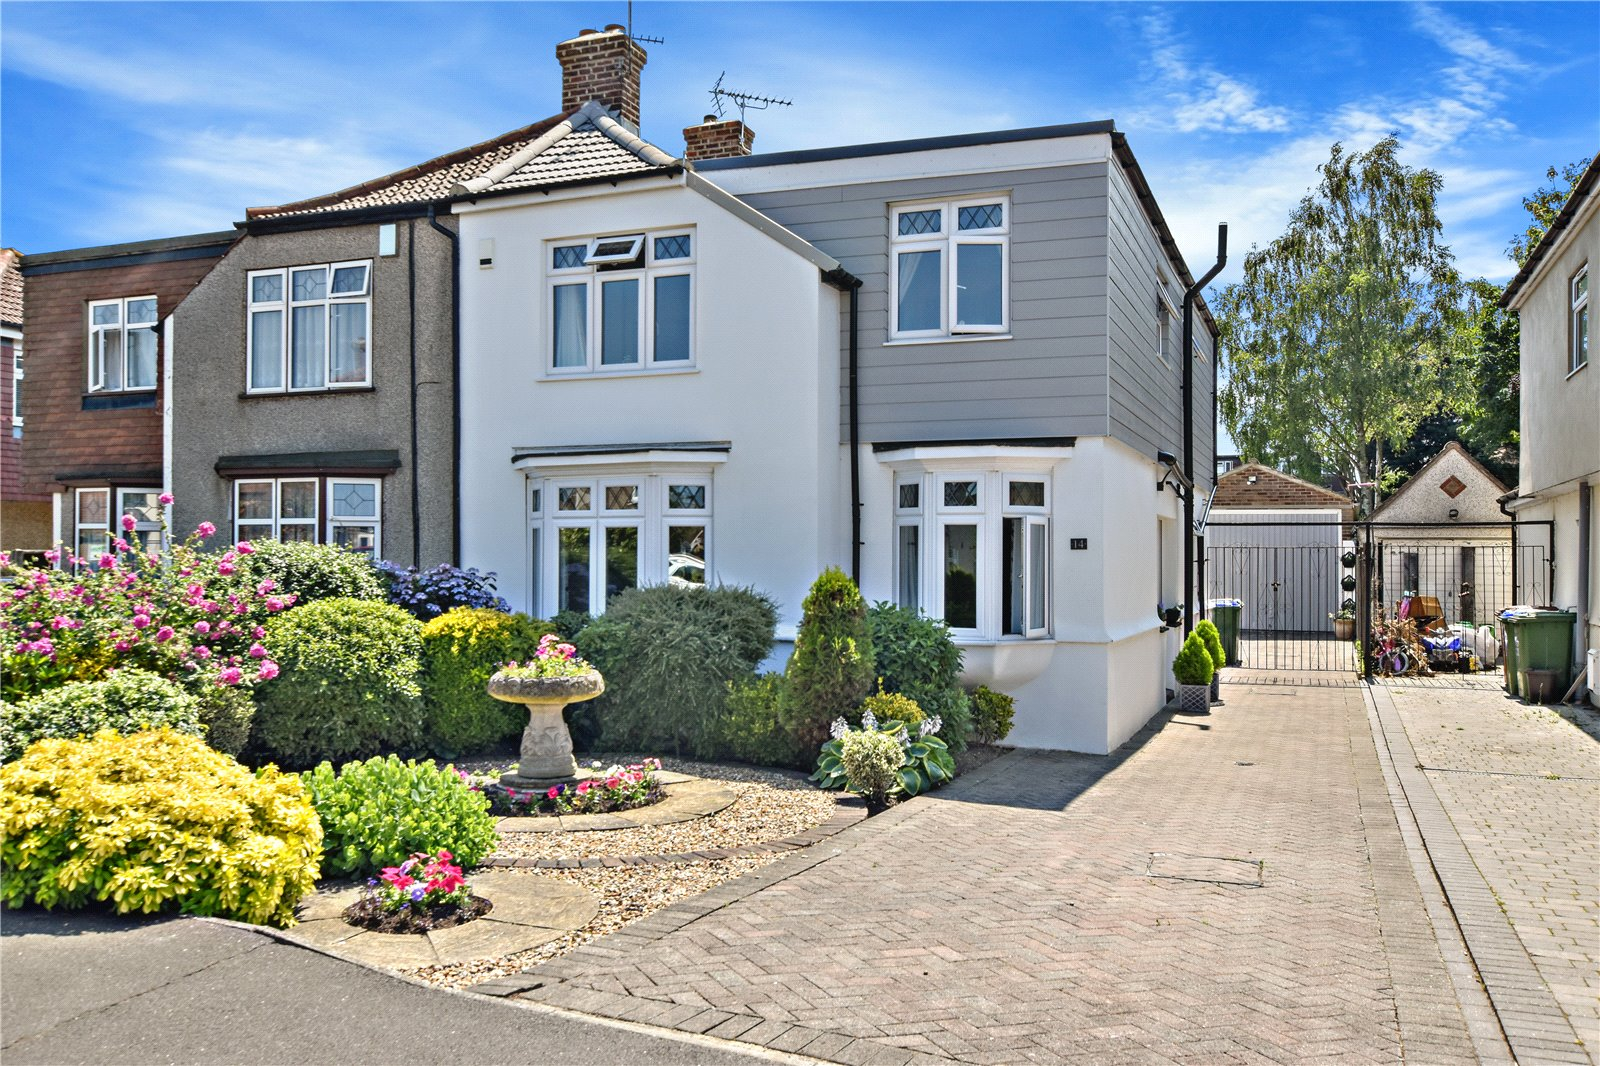 Grace Avenue, Bexleyheath, Kent, DA7